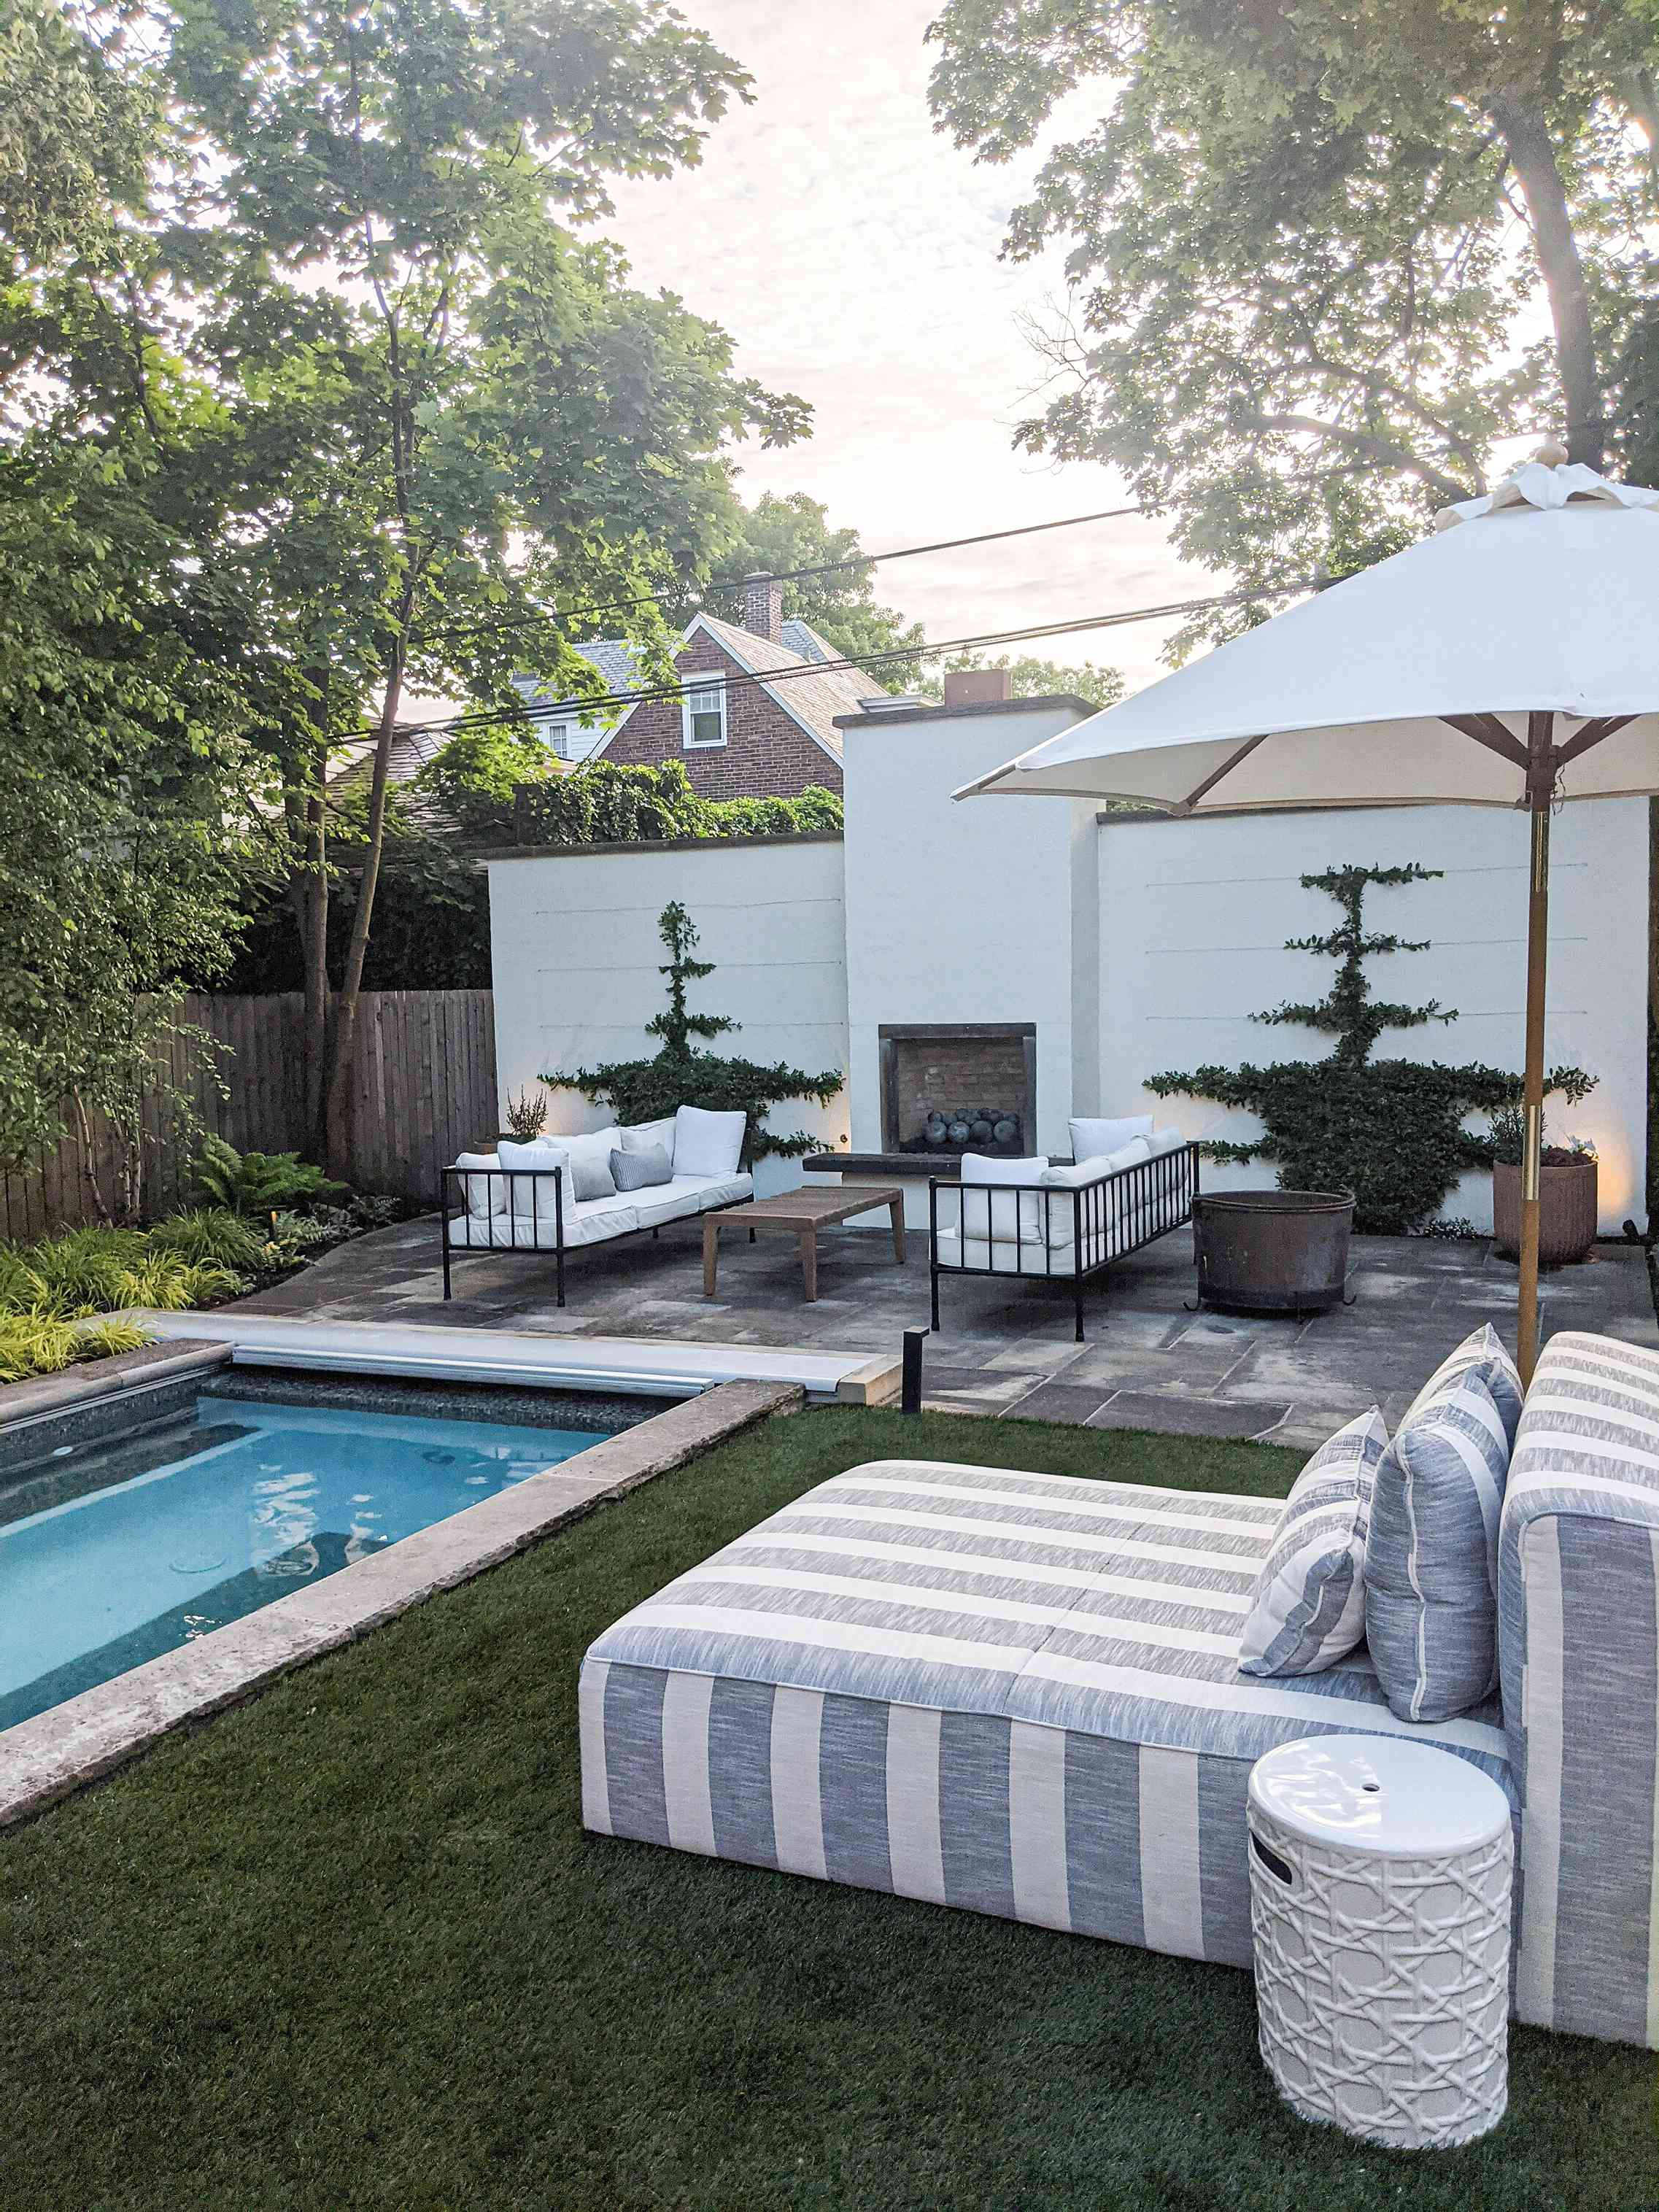 The backyard of Molly & Fritz features a pool-hottub hybrid